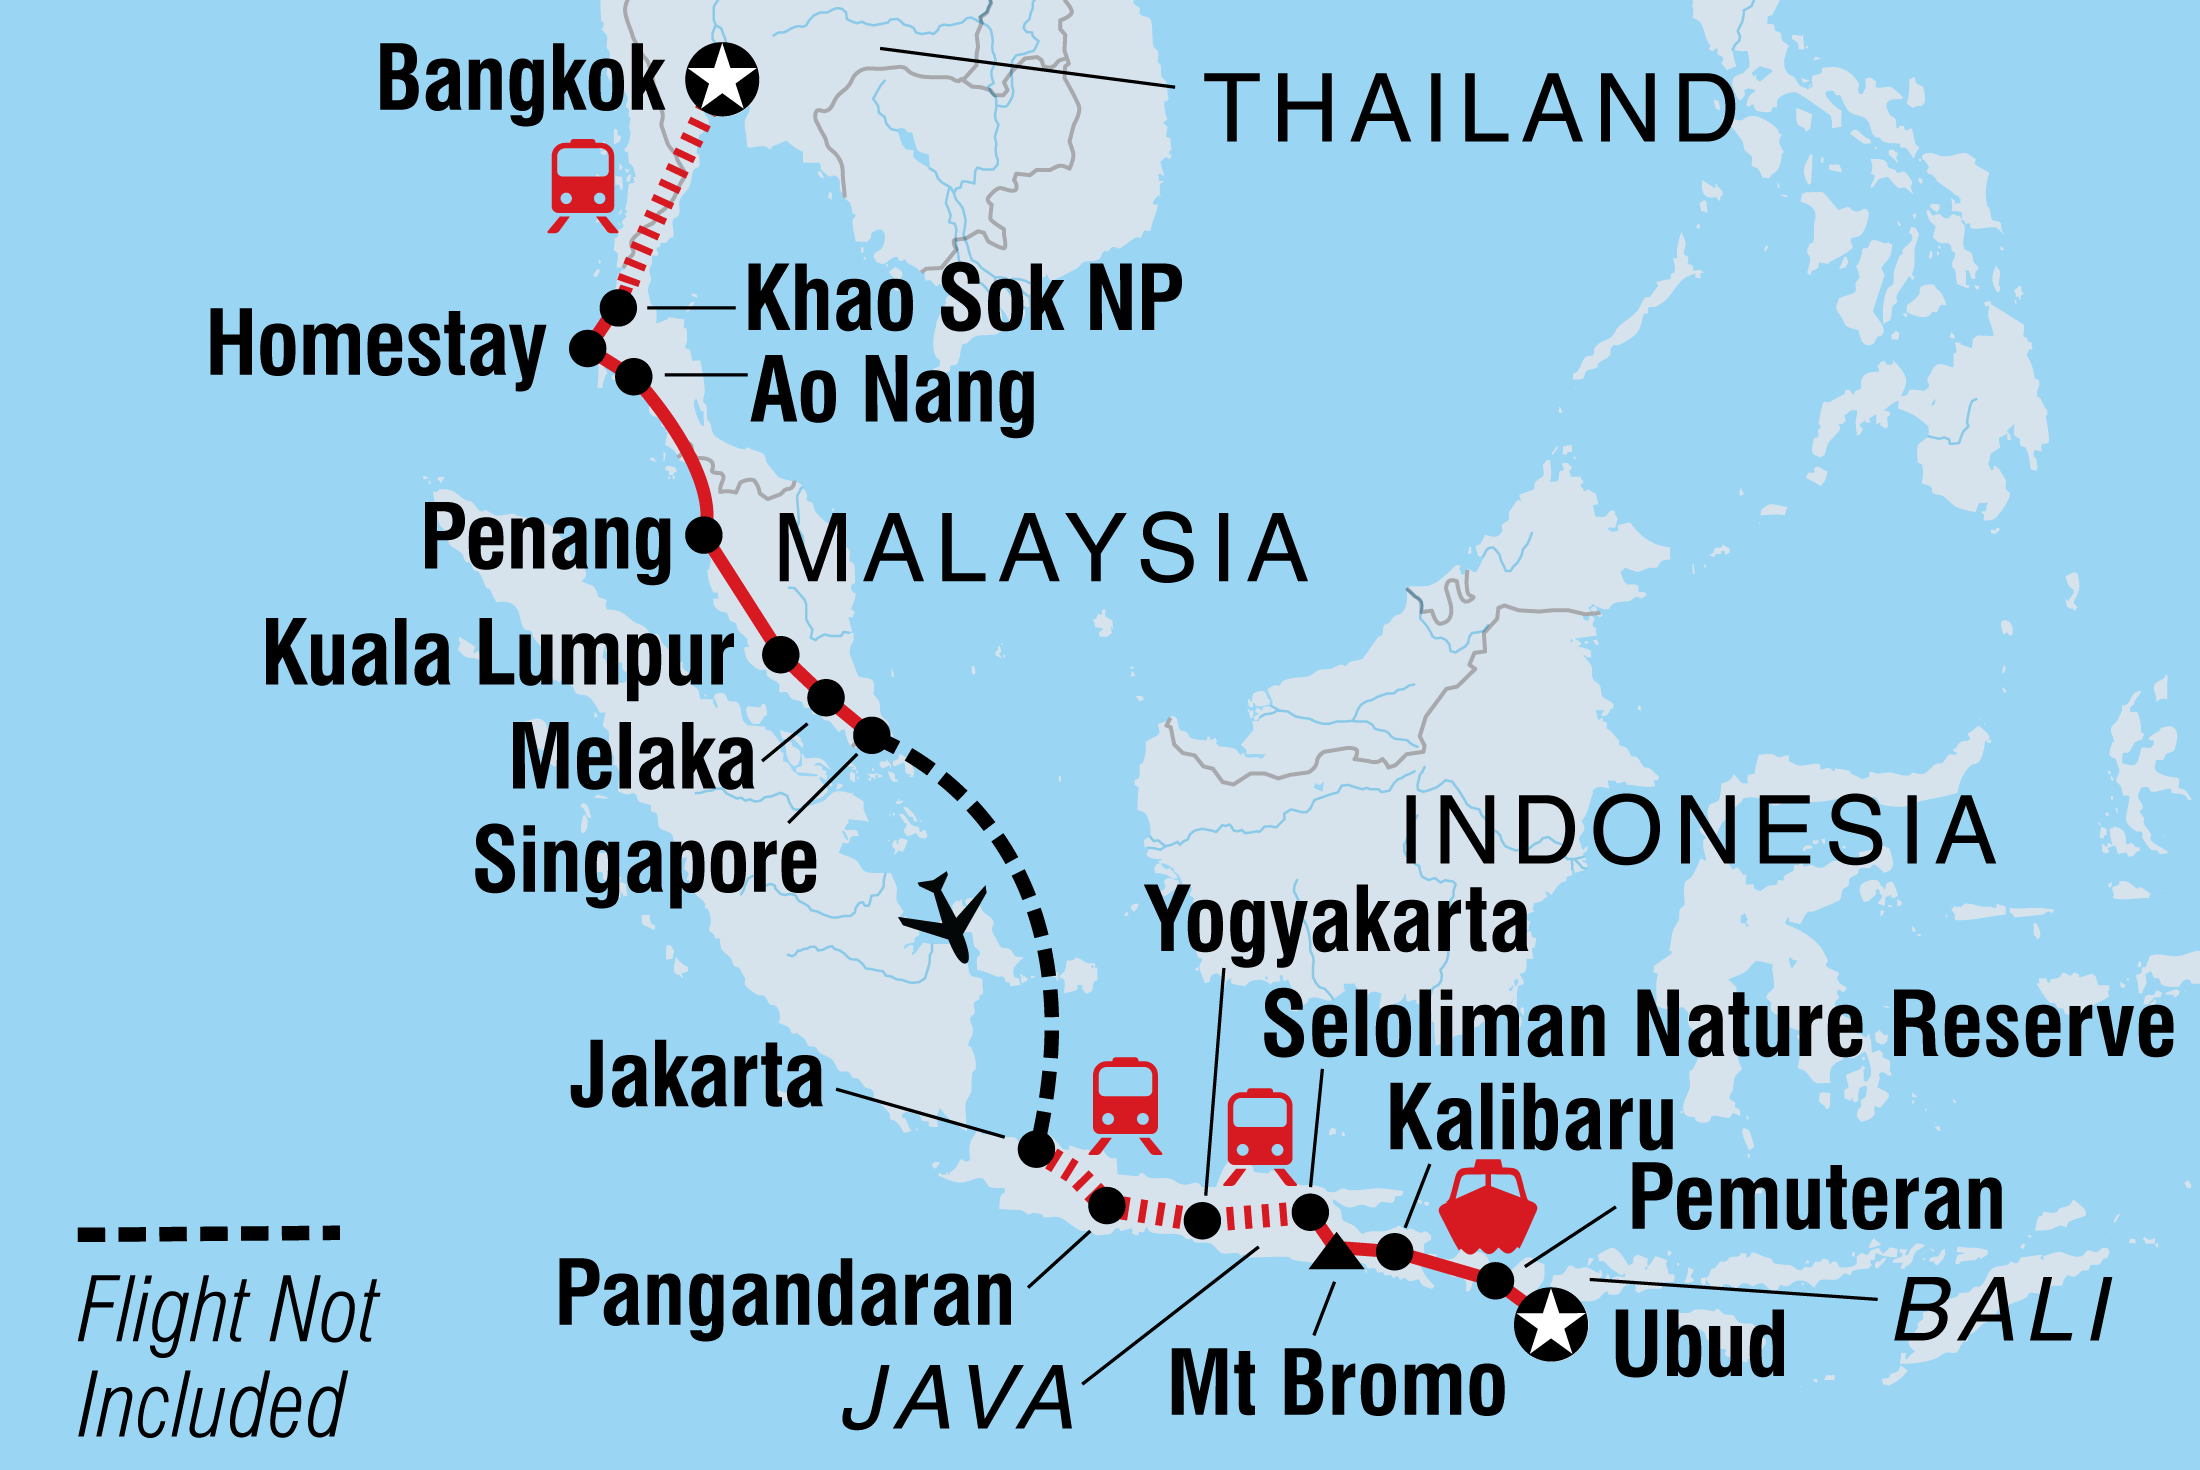 Bangkok to Bali | Intrepid Travel on map of thailand showing cities, map of island of koh tao thailand, map of bangkok neighborhoods, map of thailand provinces bangkok, map of krabi island thailand, map of thailand beaches, map of bangkok thailand cities, map of thailand google search, map of bangkok in english, map of bangkok and activities, map bahamas caribbean islands, map of wat pho in bangkok, map of bangkok thailand hotels, map of bangkok nightlife, map of islands in andaman sea thailand, koh phangan map thailand islands, map of bkk, map of mactan island cebu, detailed map of thailand islands, map of jomtien beach thailand,